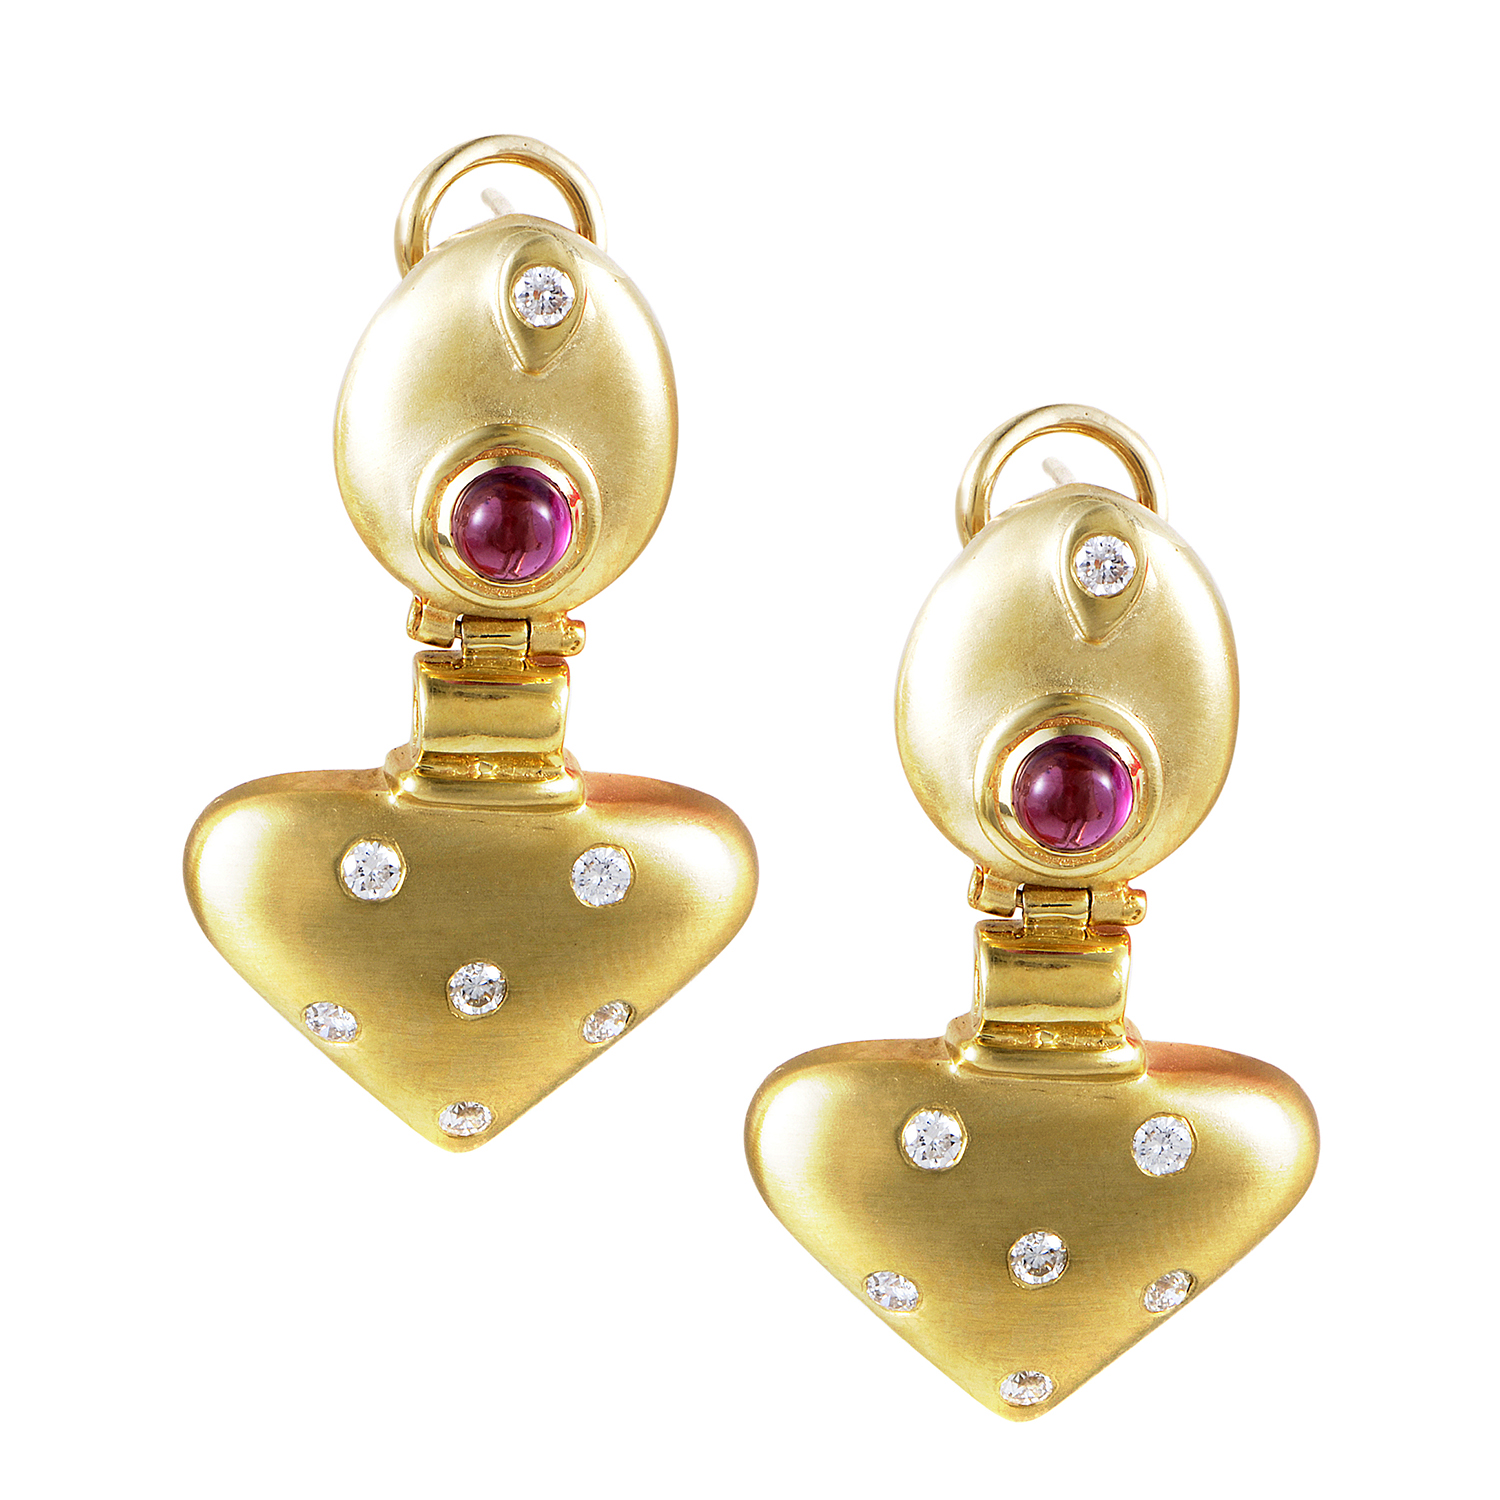 14K Yellow Gold Tourmaline & Diamond Drop Earrings MFCO05-122914